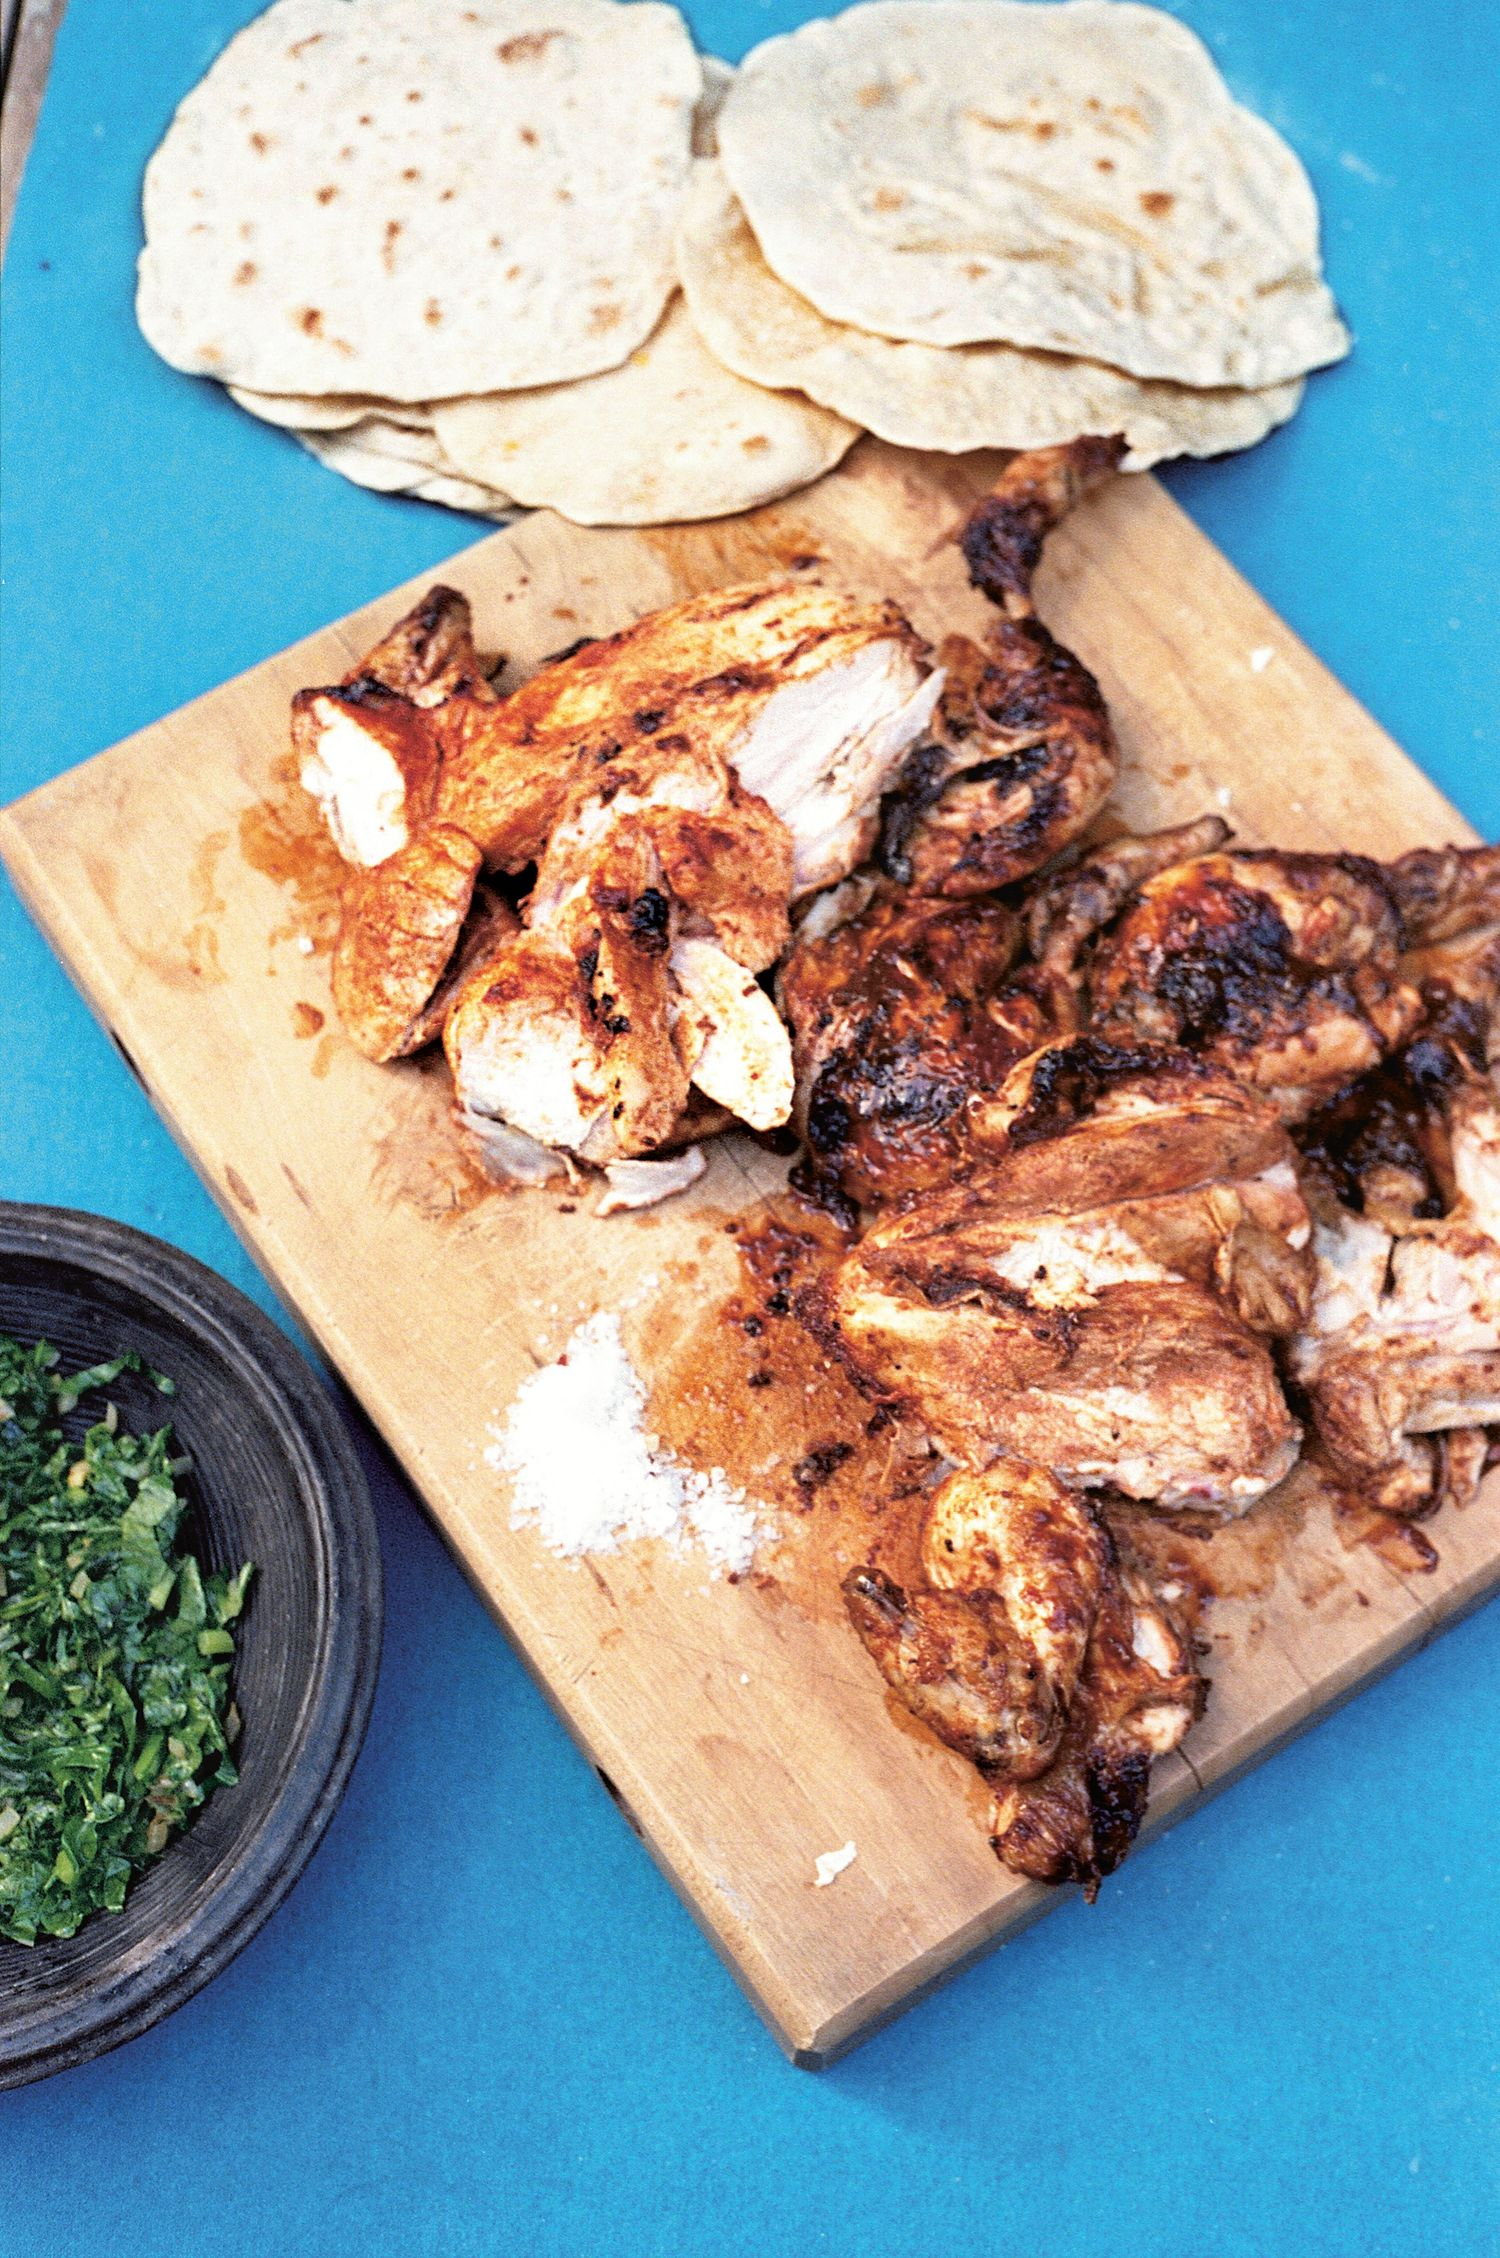 Peri-Peri Chicken recipe from African cookbook The Groundnut